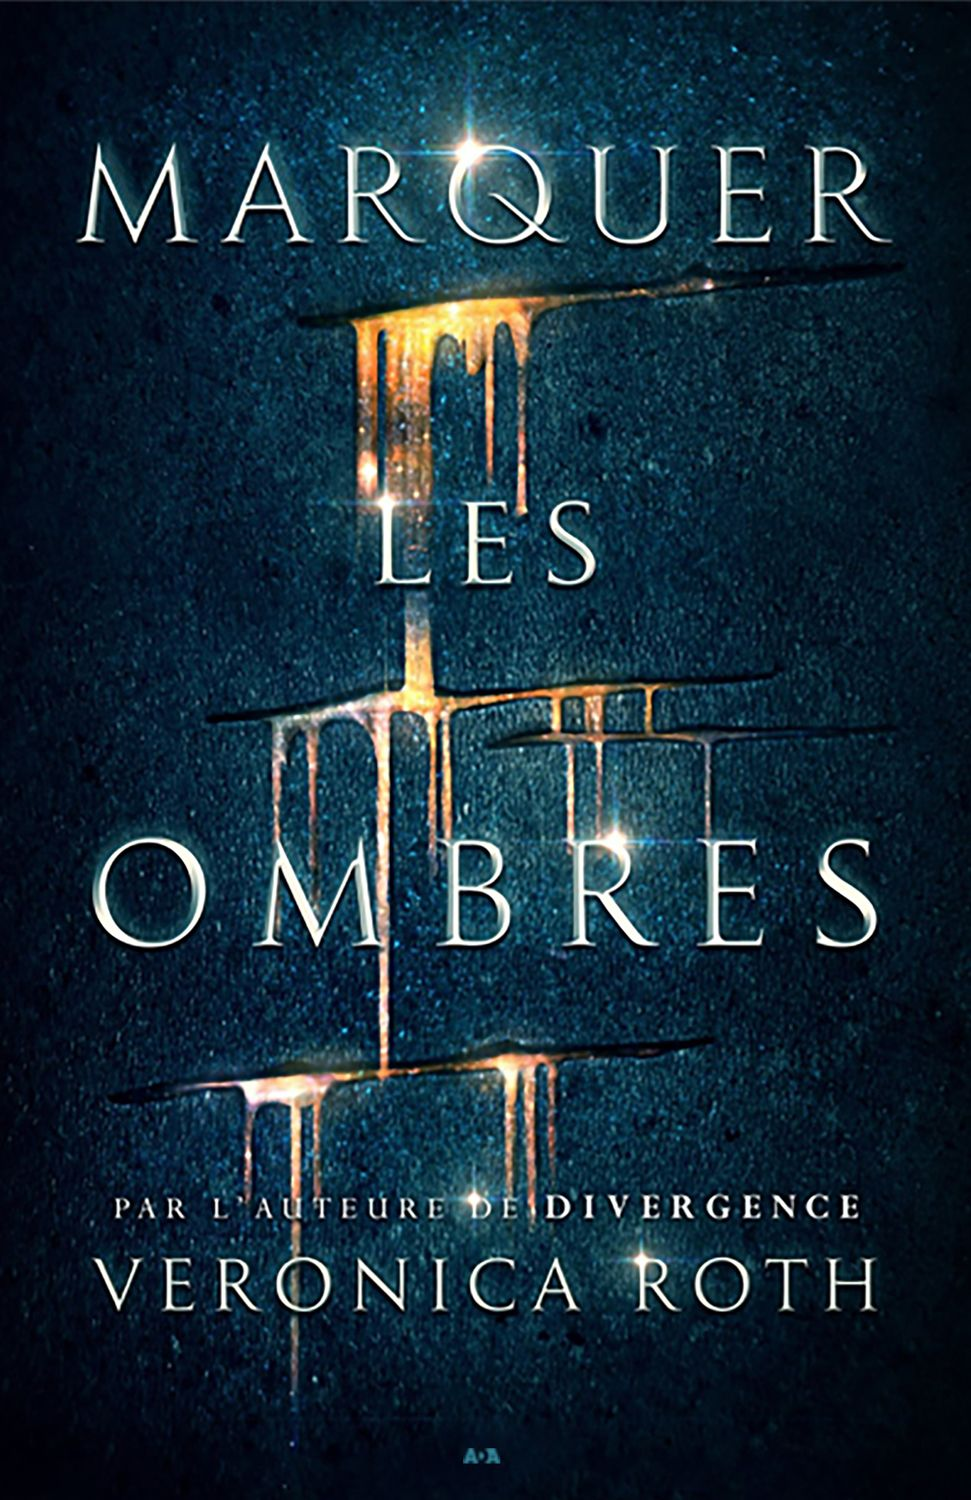 Marquer Les Ombres Veronica Roth 480 Pages Couverture